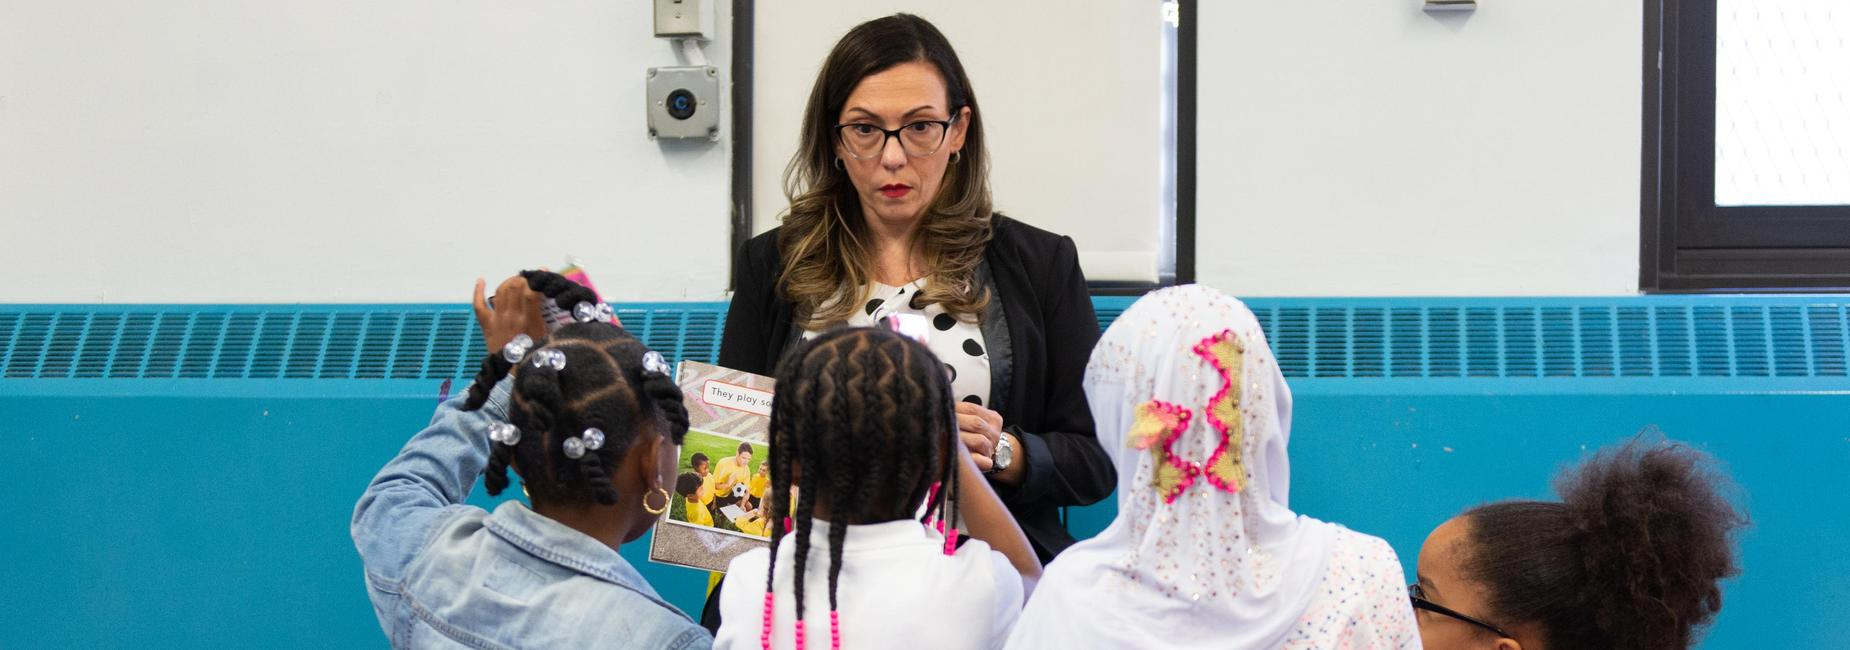 An elementary school teacher reading a book to four students.